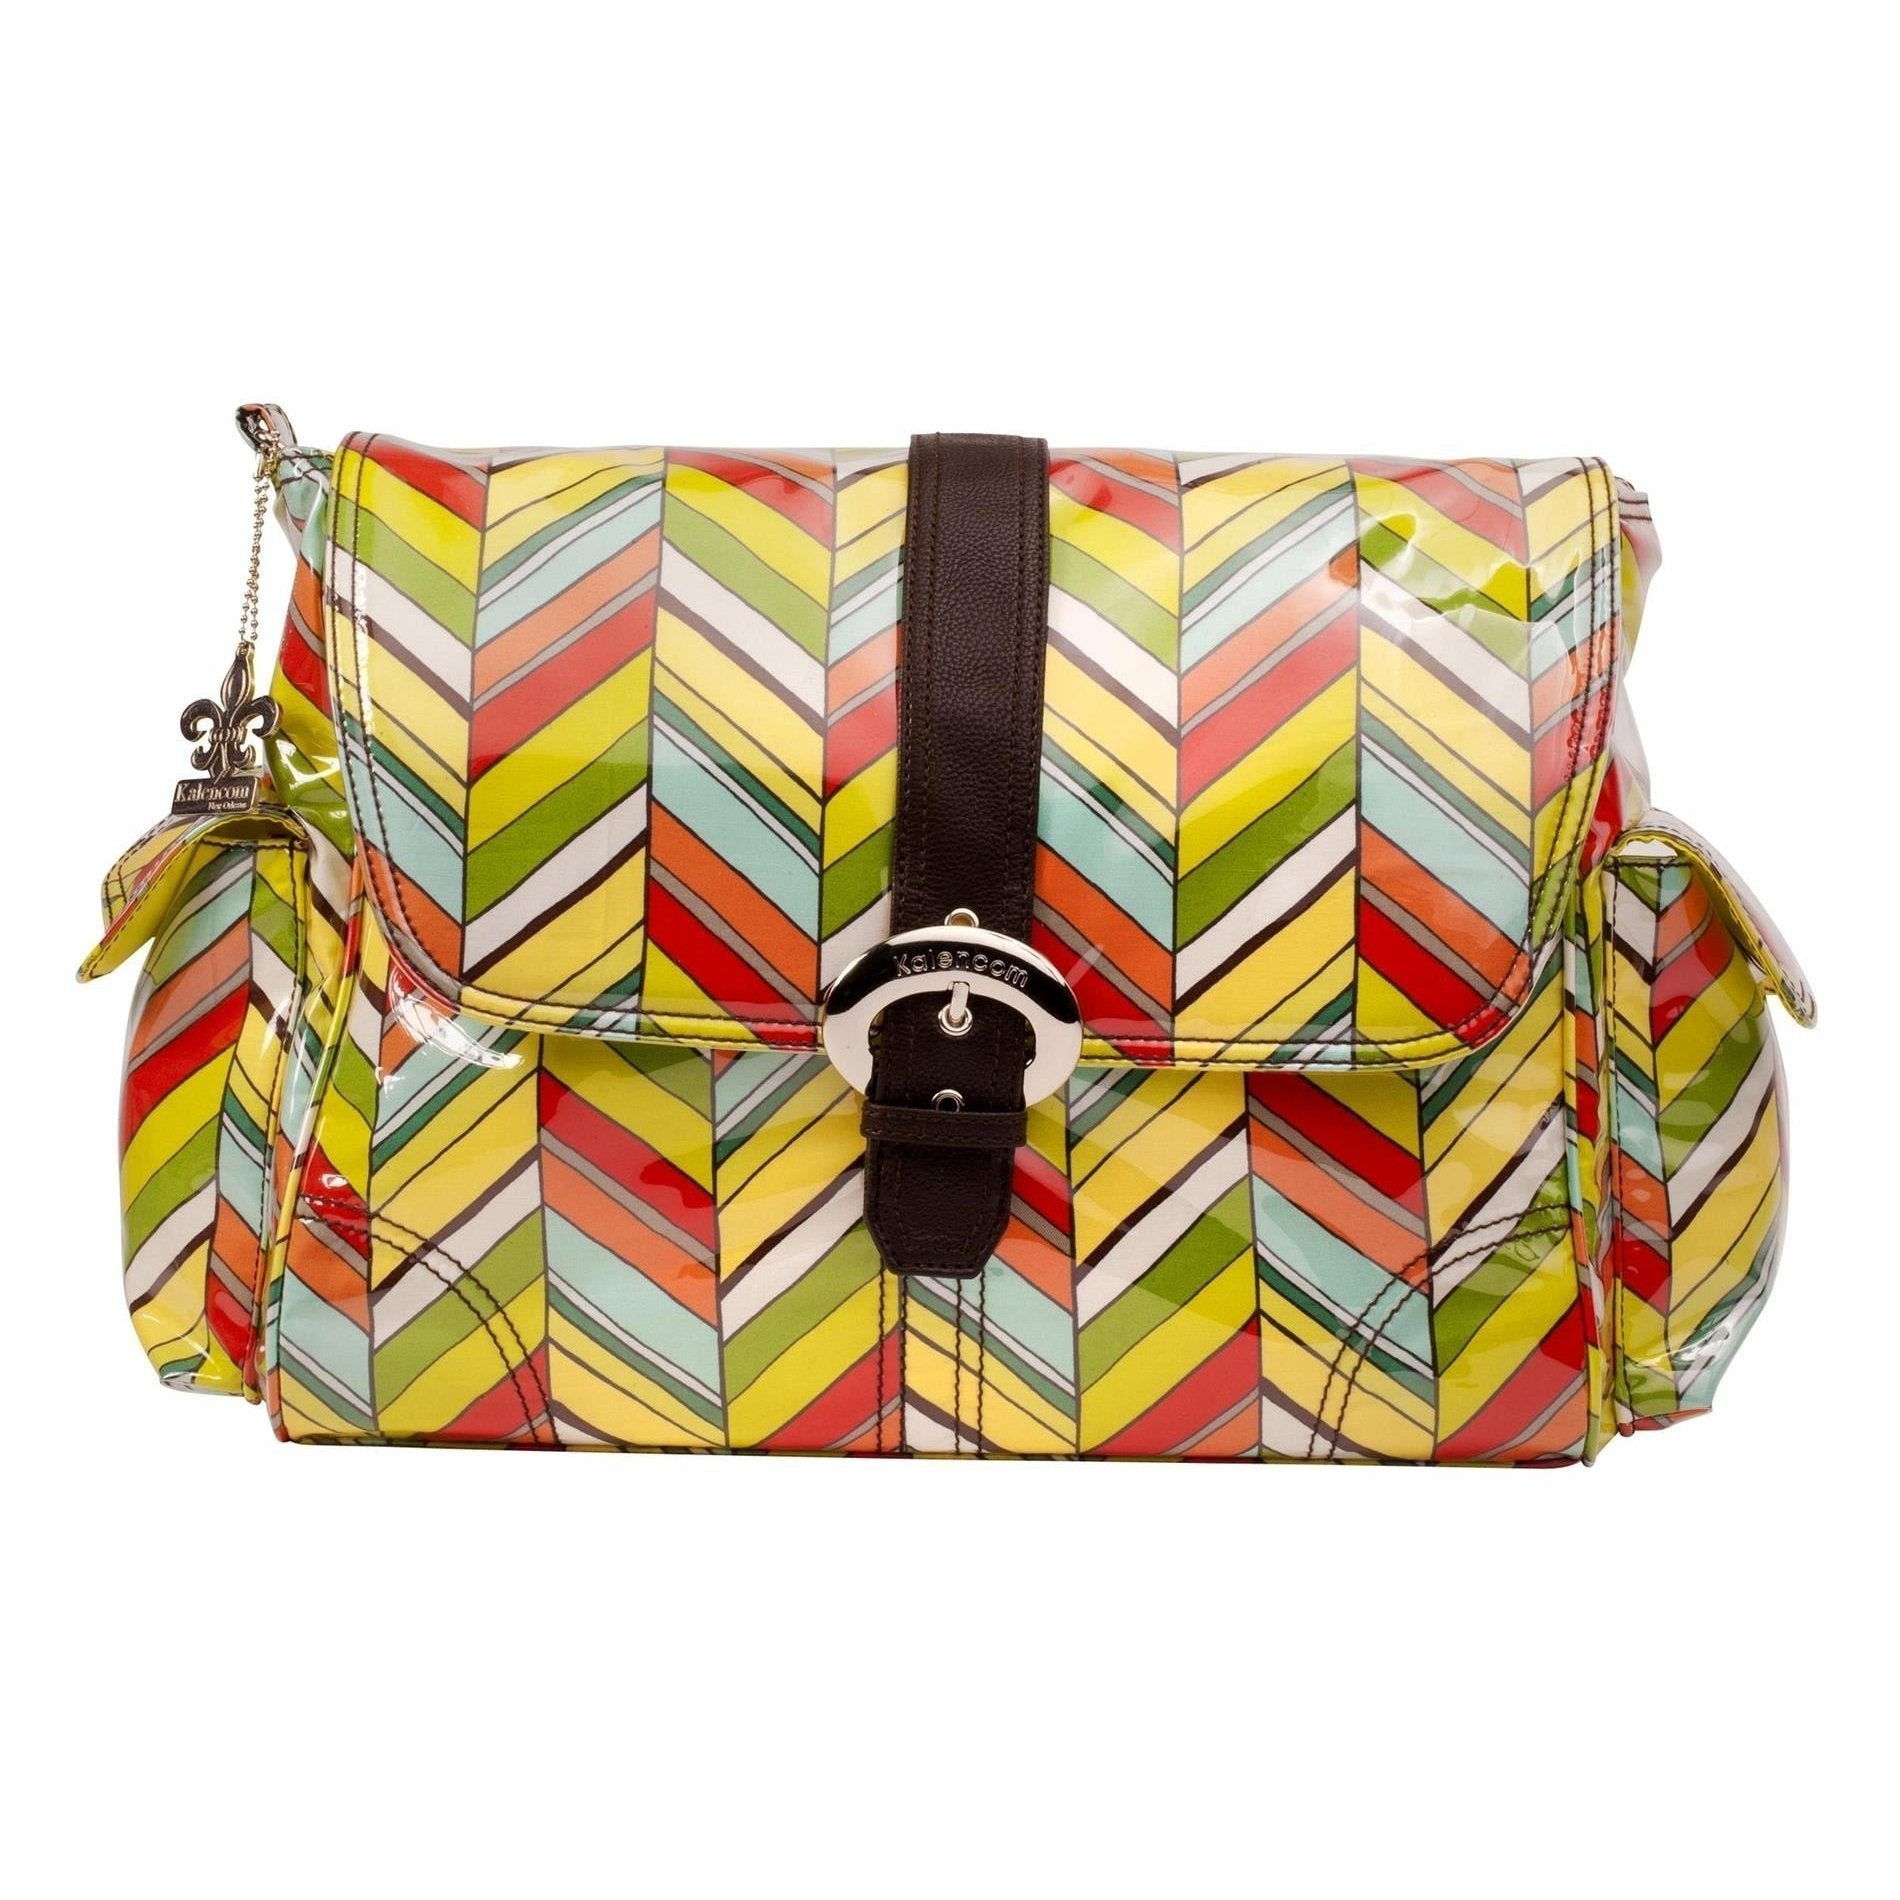 Rainforest Laminated Buckle Diaper Bag | Style 2960 - Kalencom-Diaper Bags-Default-Jack and Jill Boutique